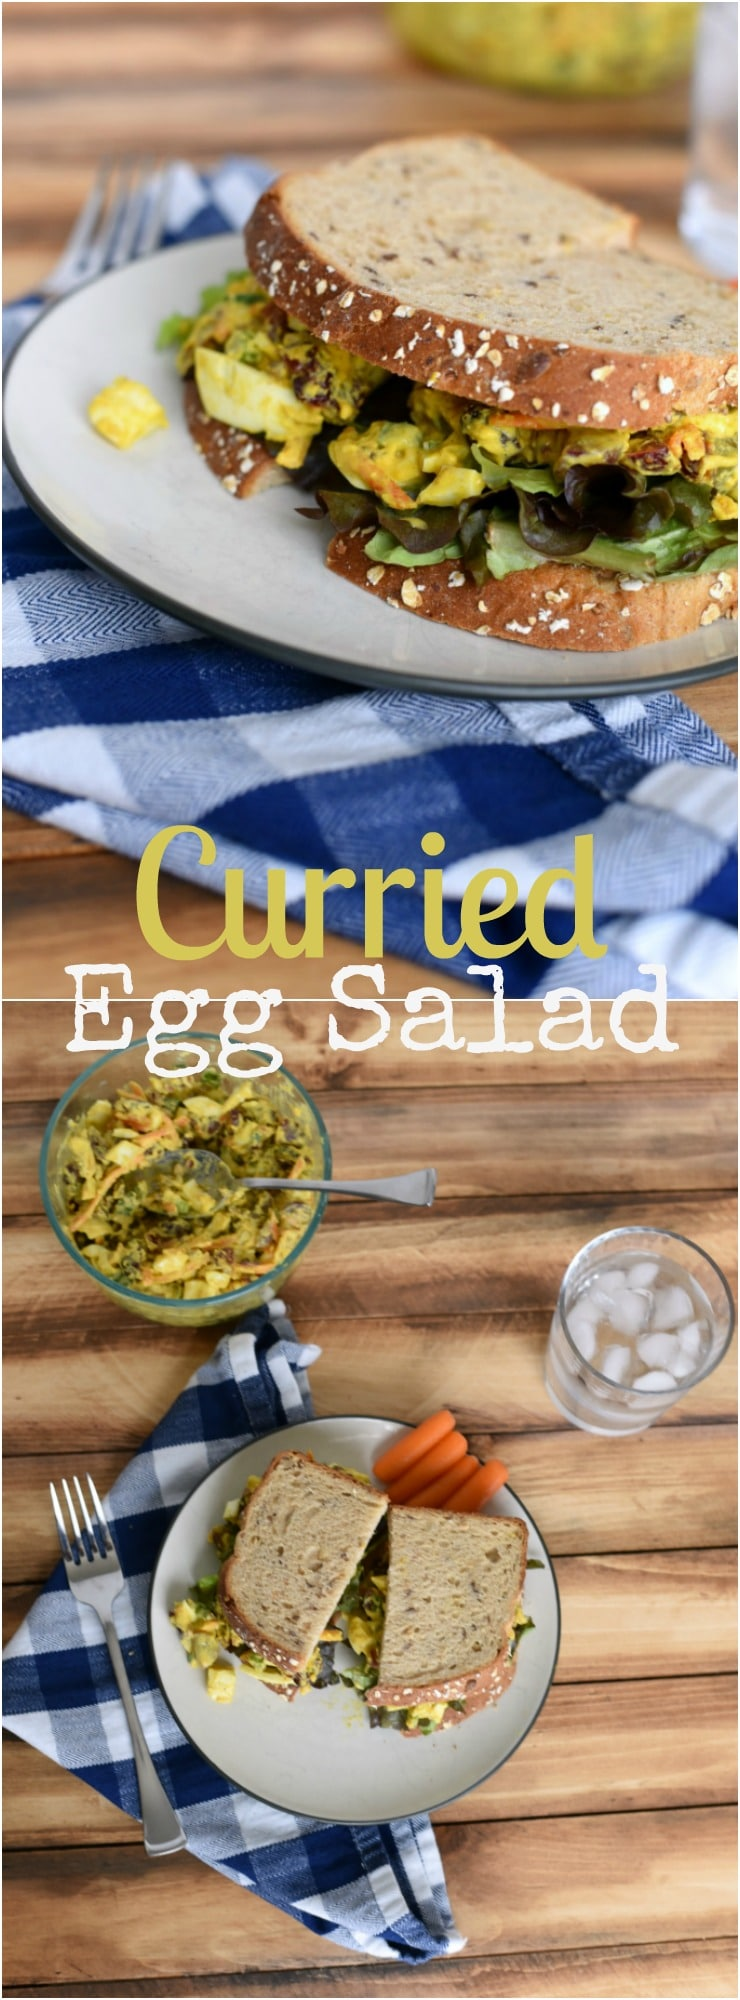 Upgrade your boring ho-hum egg salad into this super healthy and easy lunch! A perfect way to use leftover hard boiled eggs! Curried Egg salad with cranberries, pecans and greek yogurt! SO GOOD!